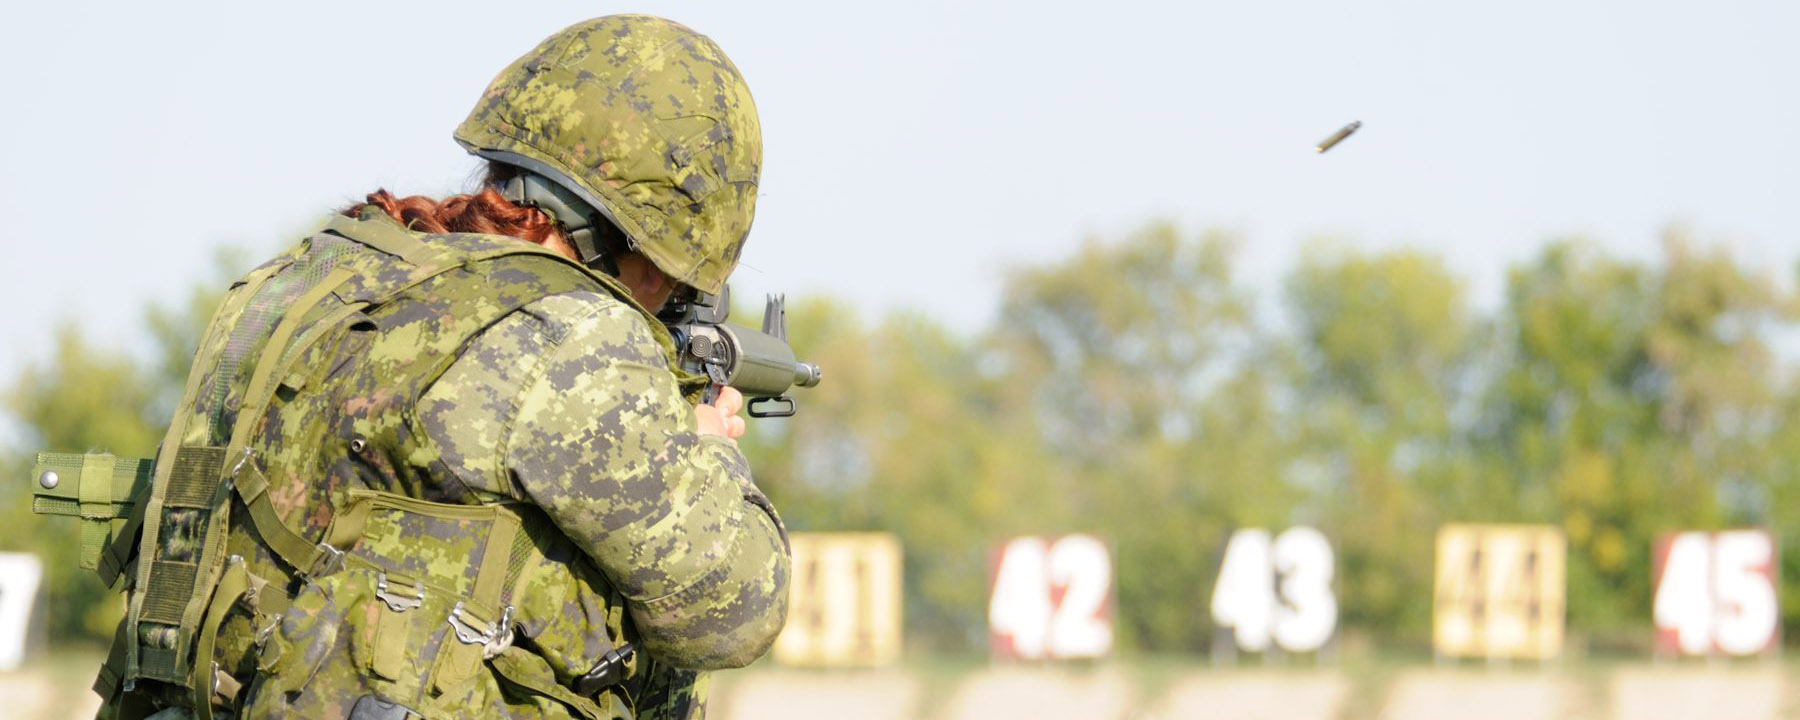 Slide - A female Canadian Army soldier dressed in camouflage combat gear shoots an assault rifle on a shooting range.